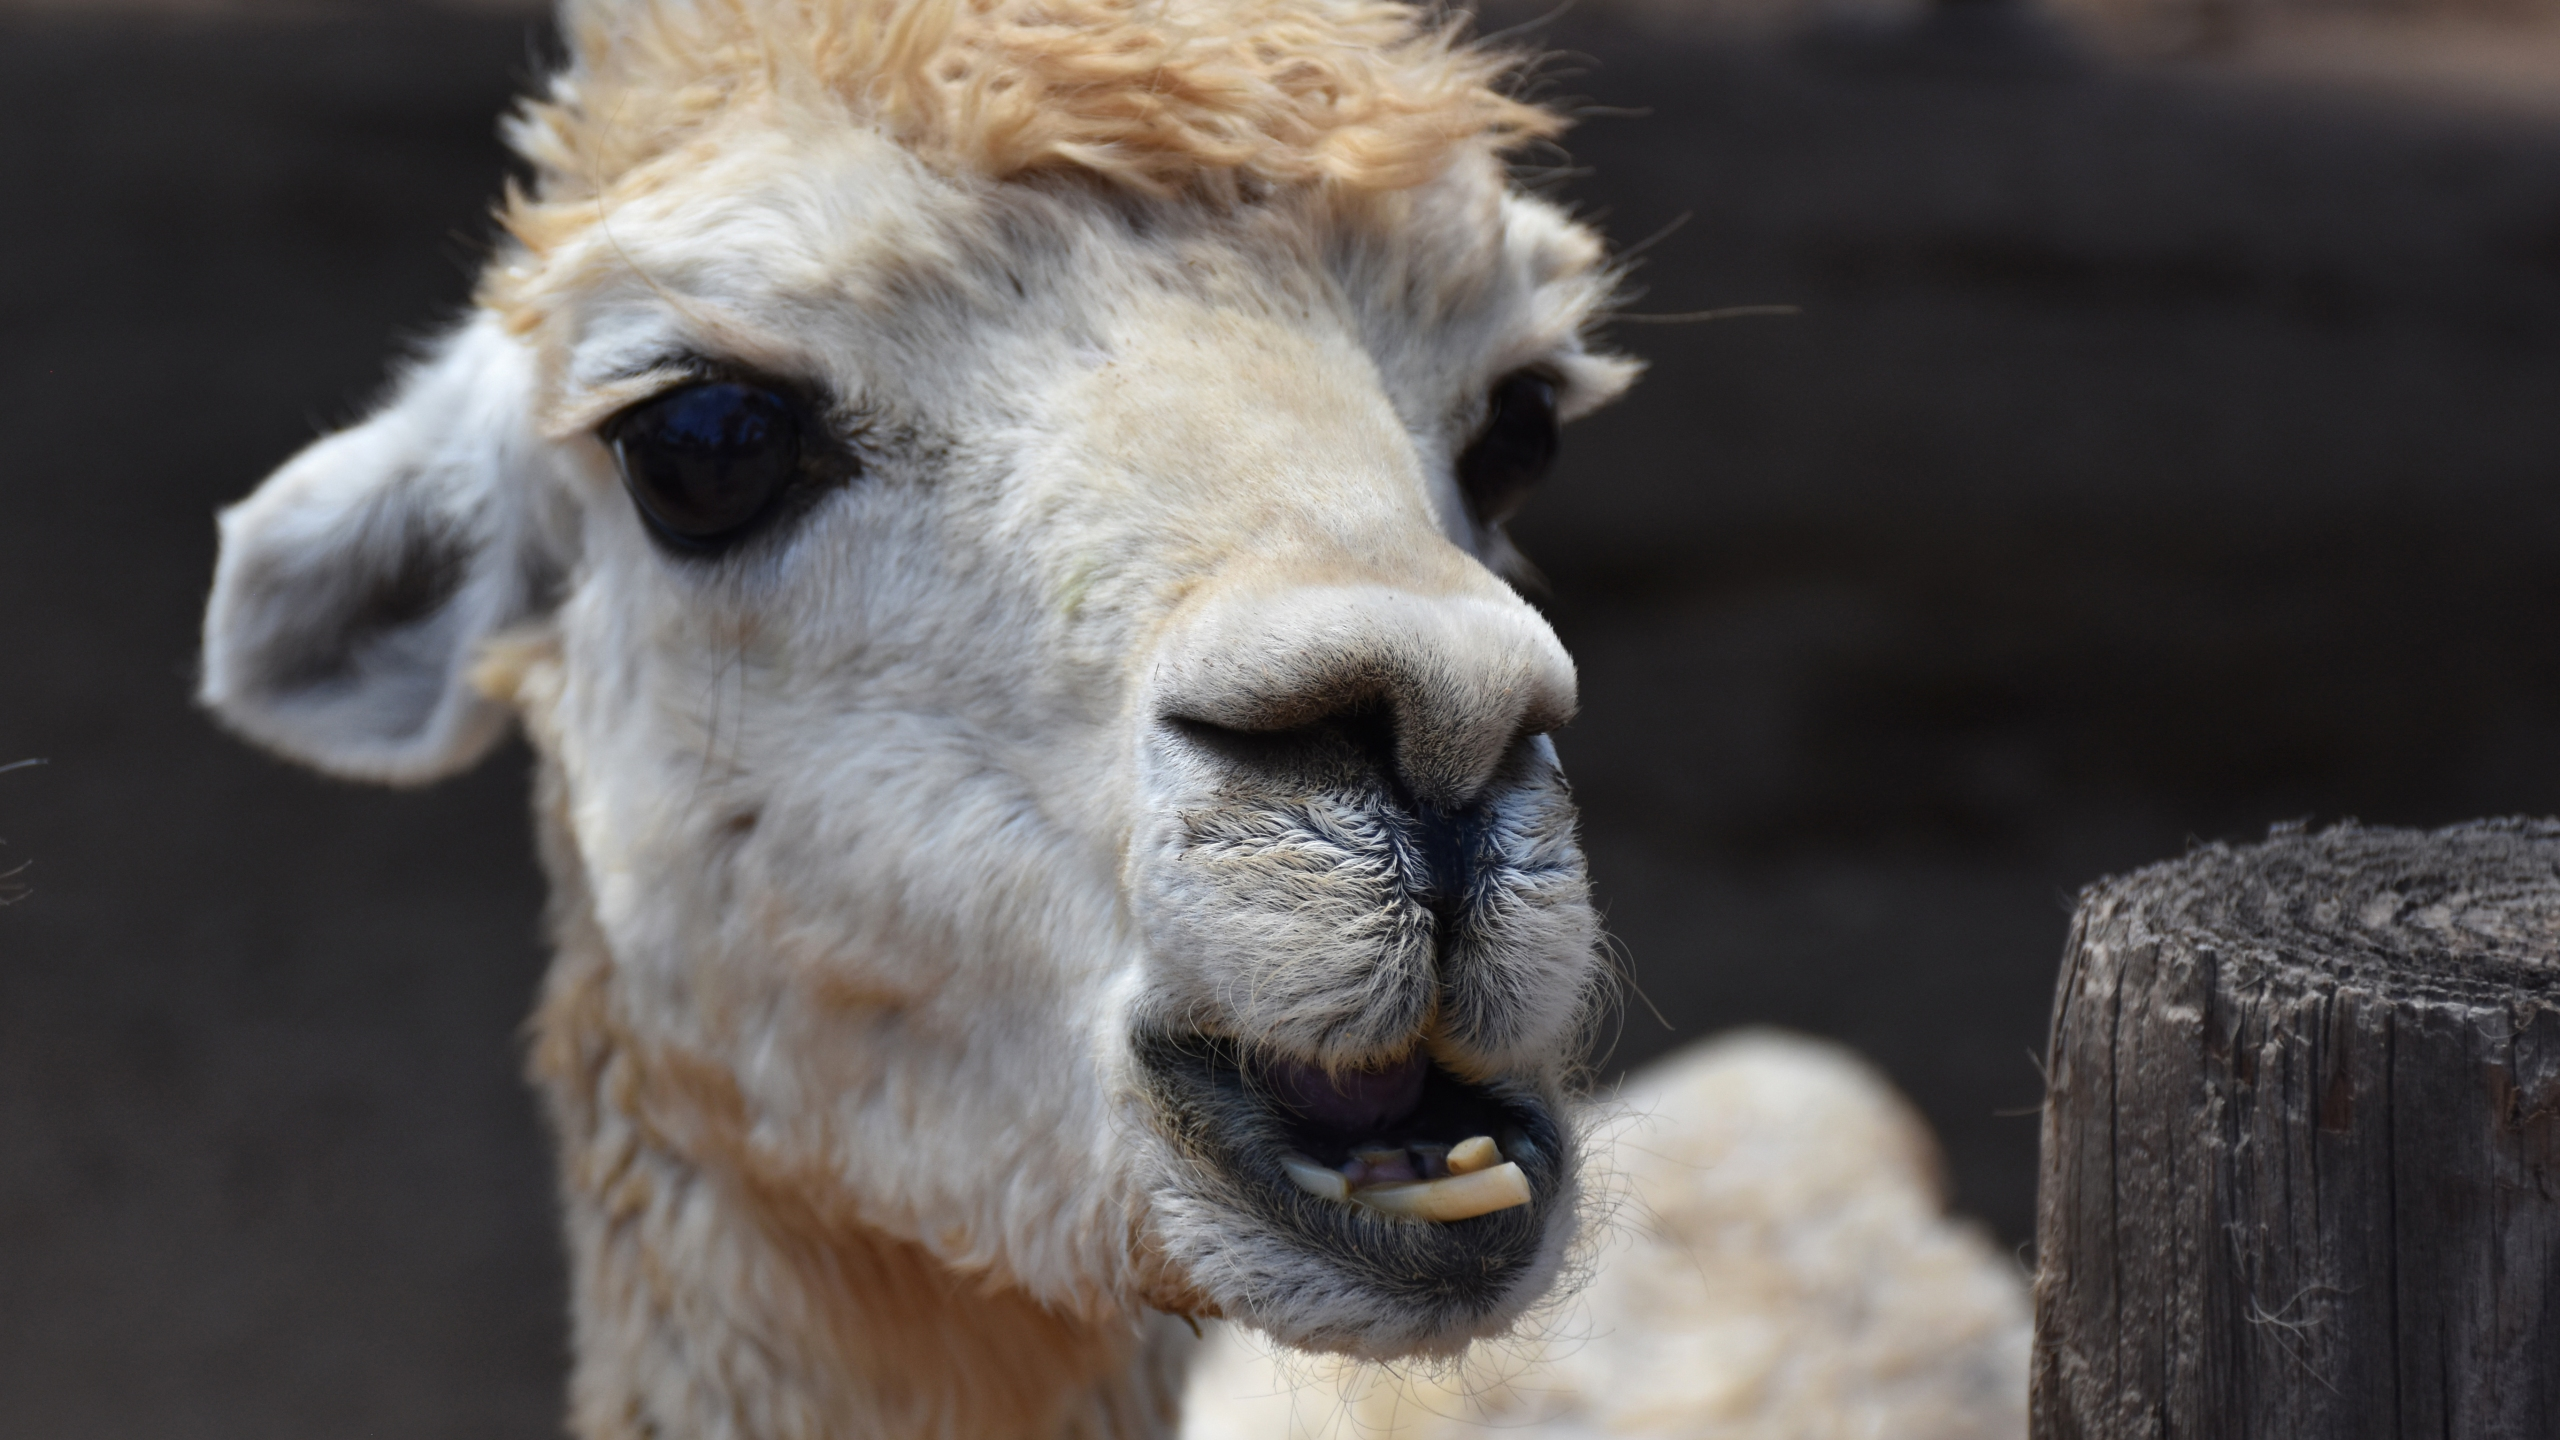 An alpaca is seen in a file photo. (iStock/Getty Images Plus)